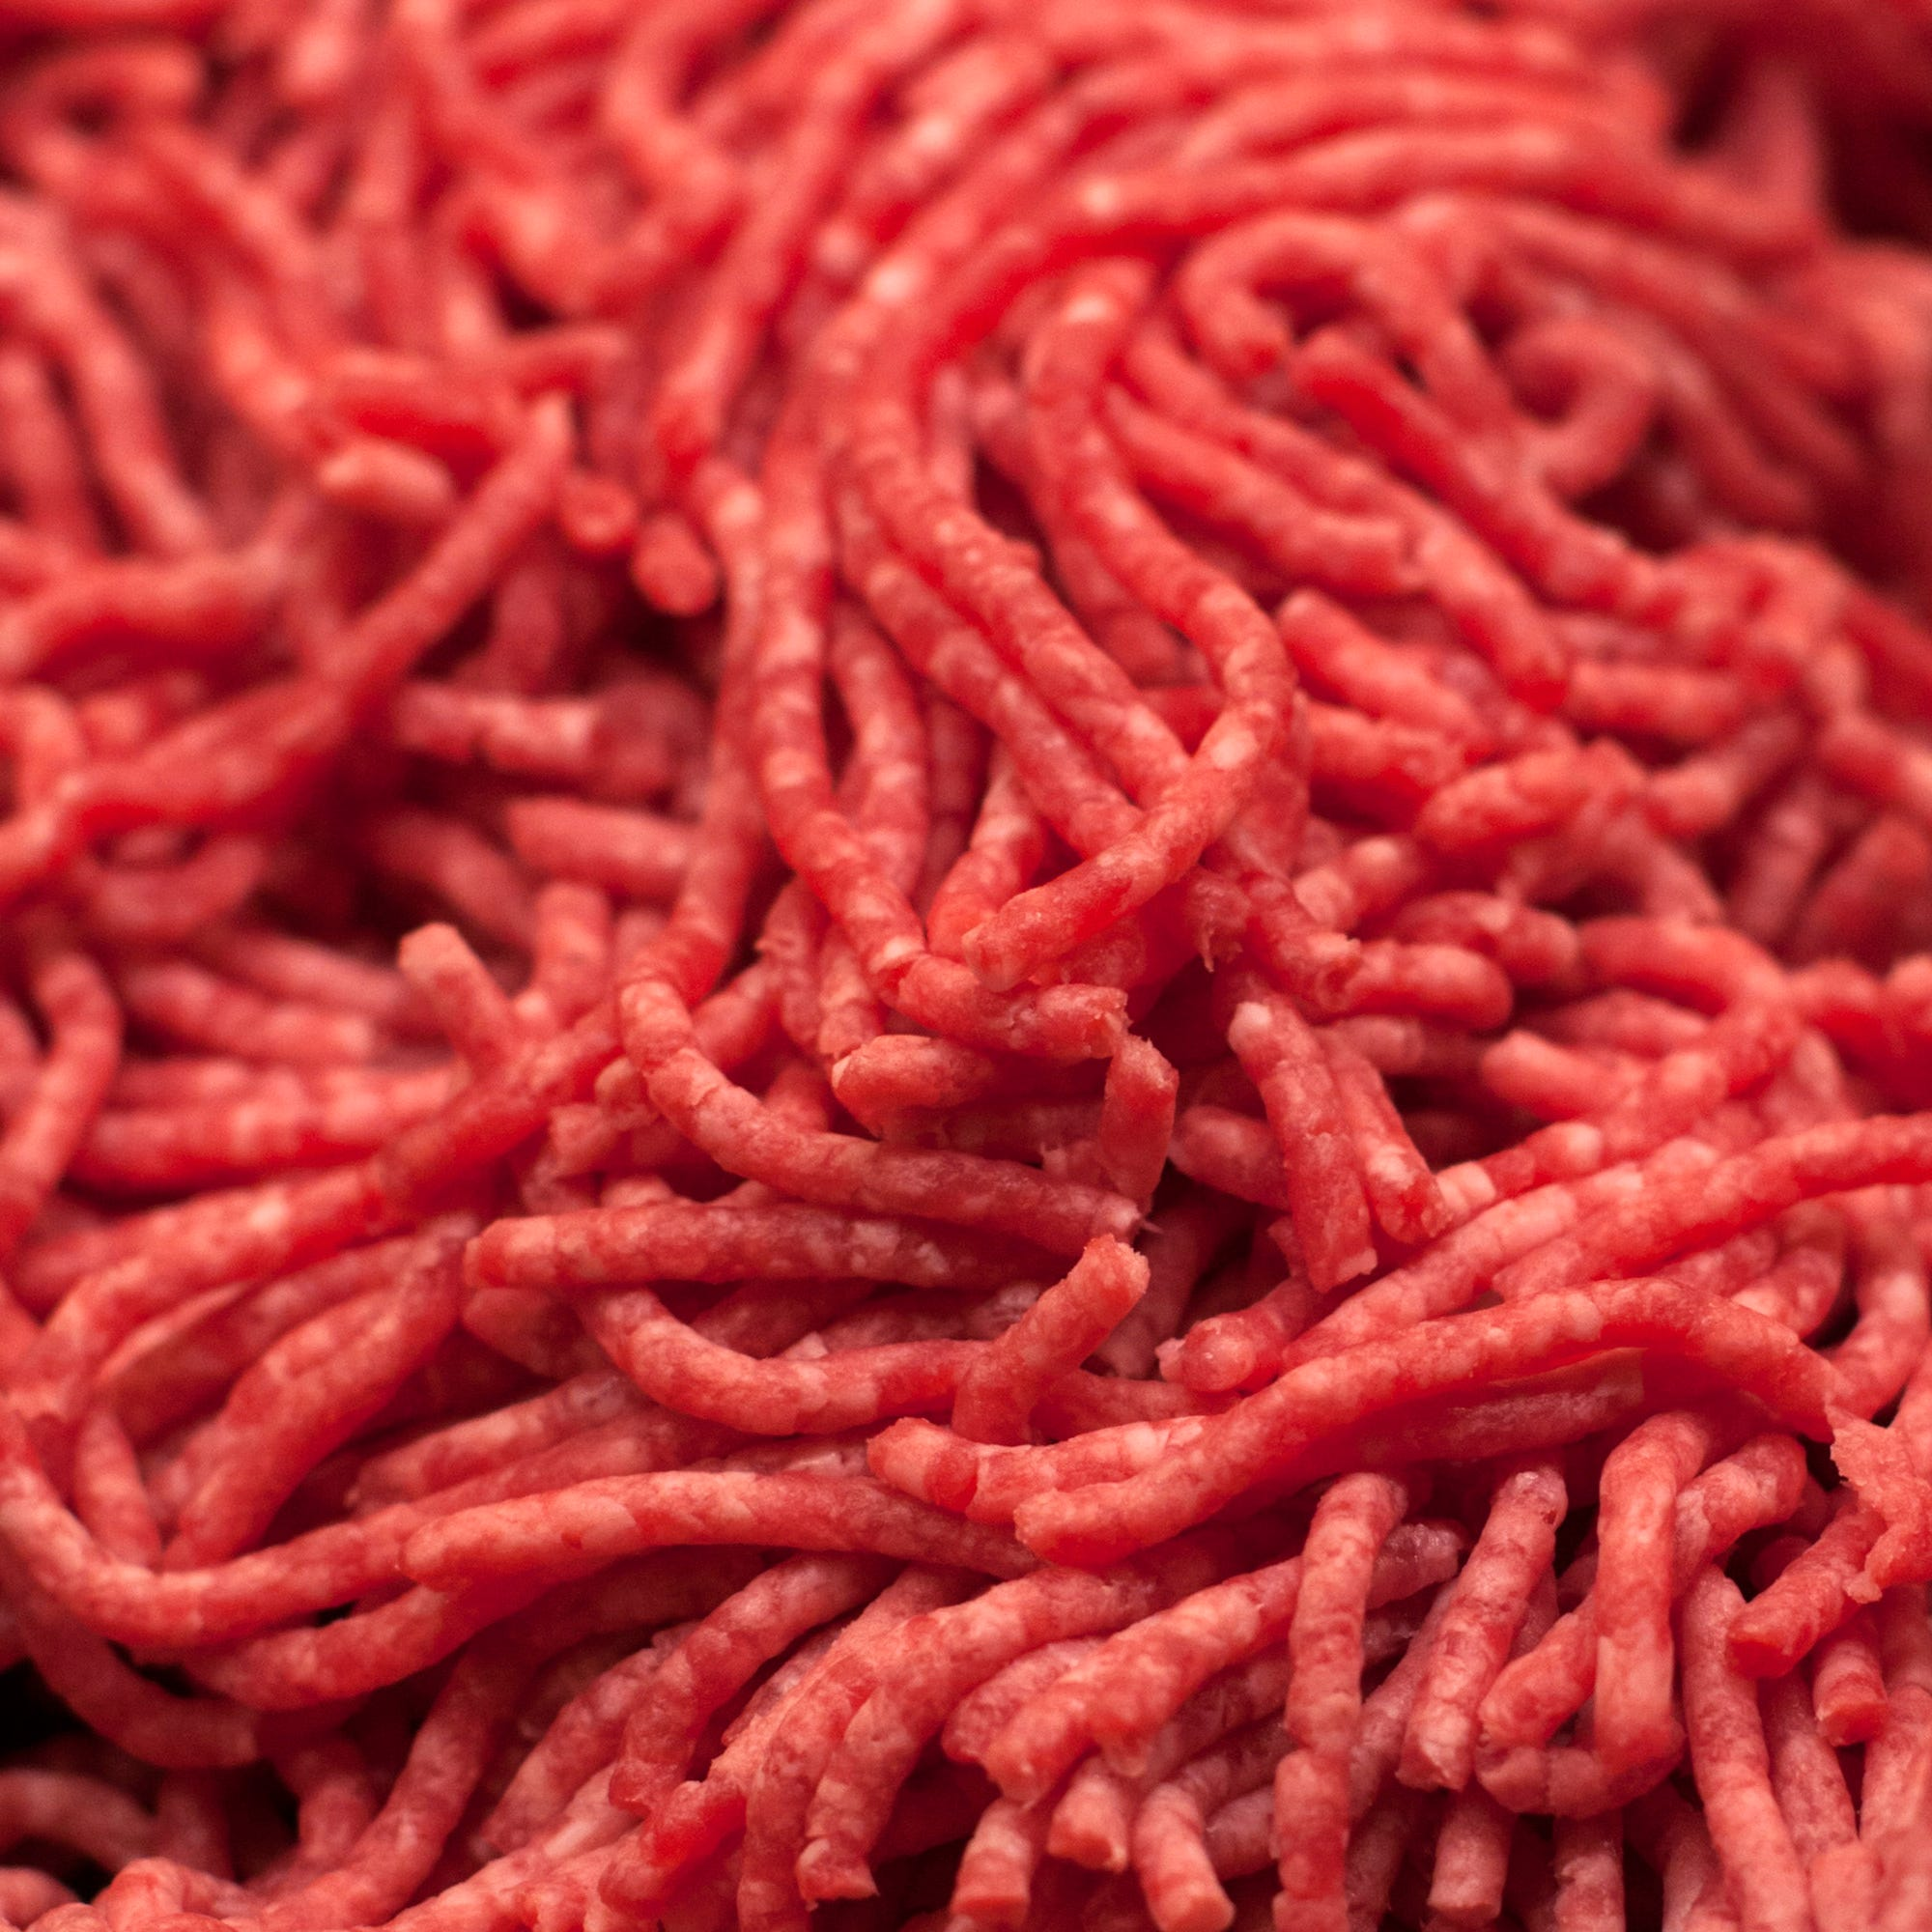 E. coli outbreak: 26 tons of ground beef added to growing recall